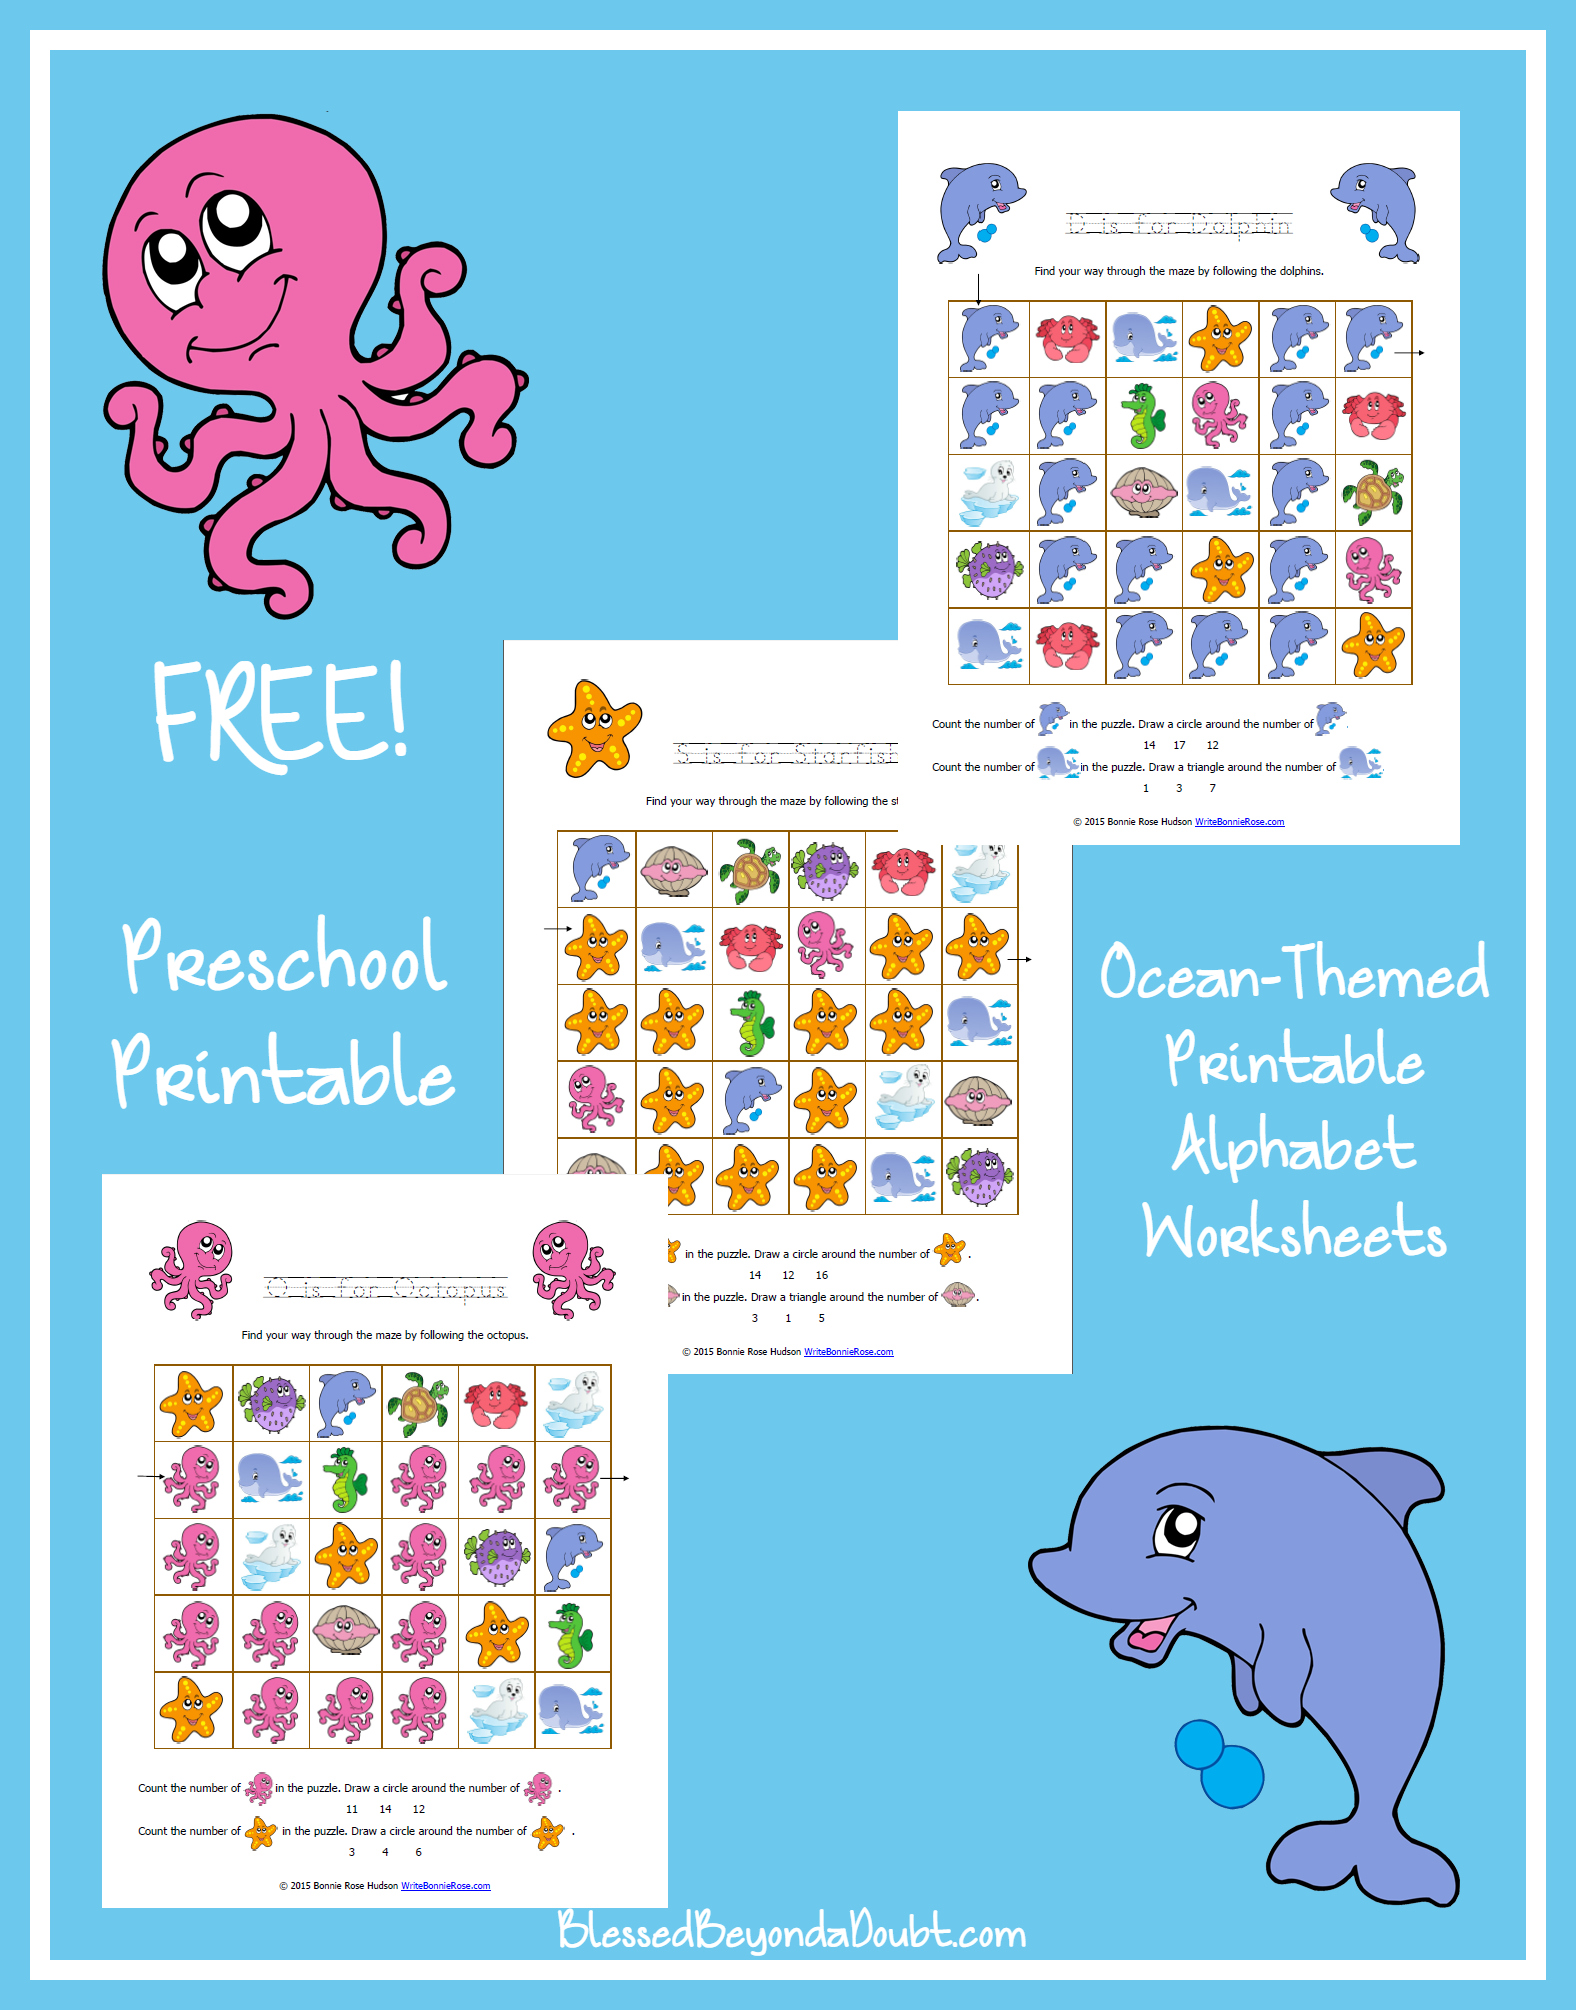 FREE Ocean-Themed Printable Alphabet Worksheets for Preschool